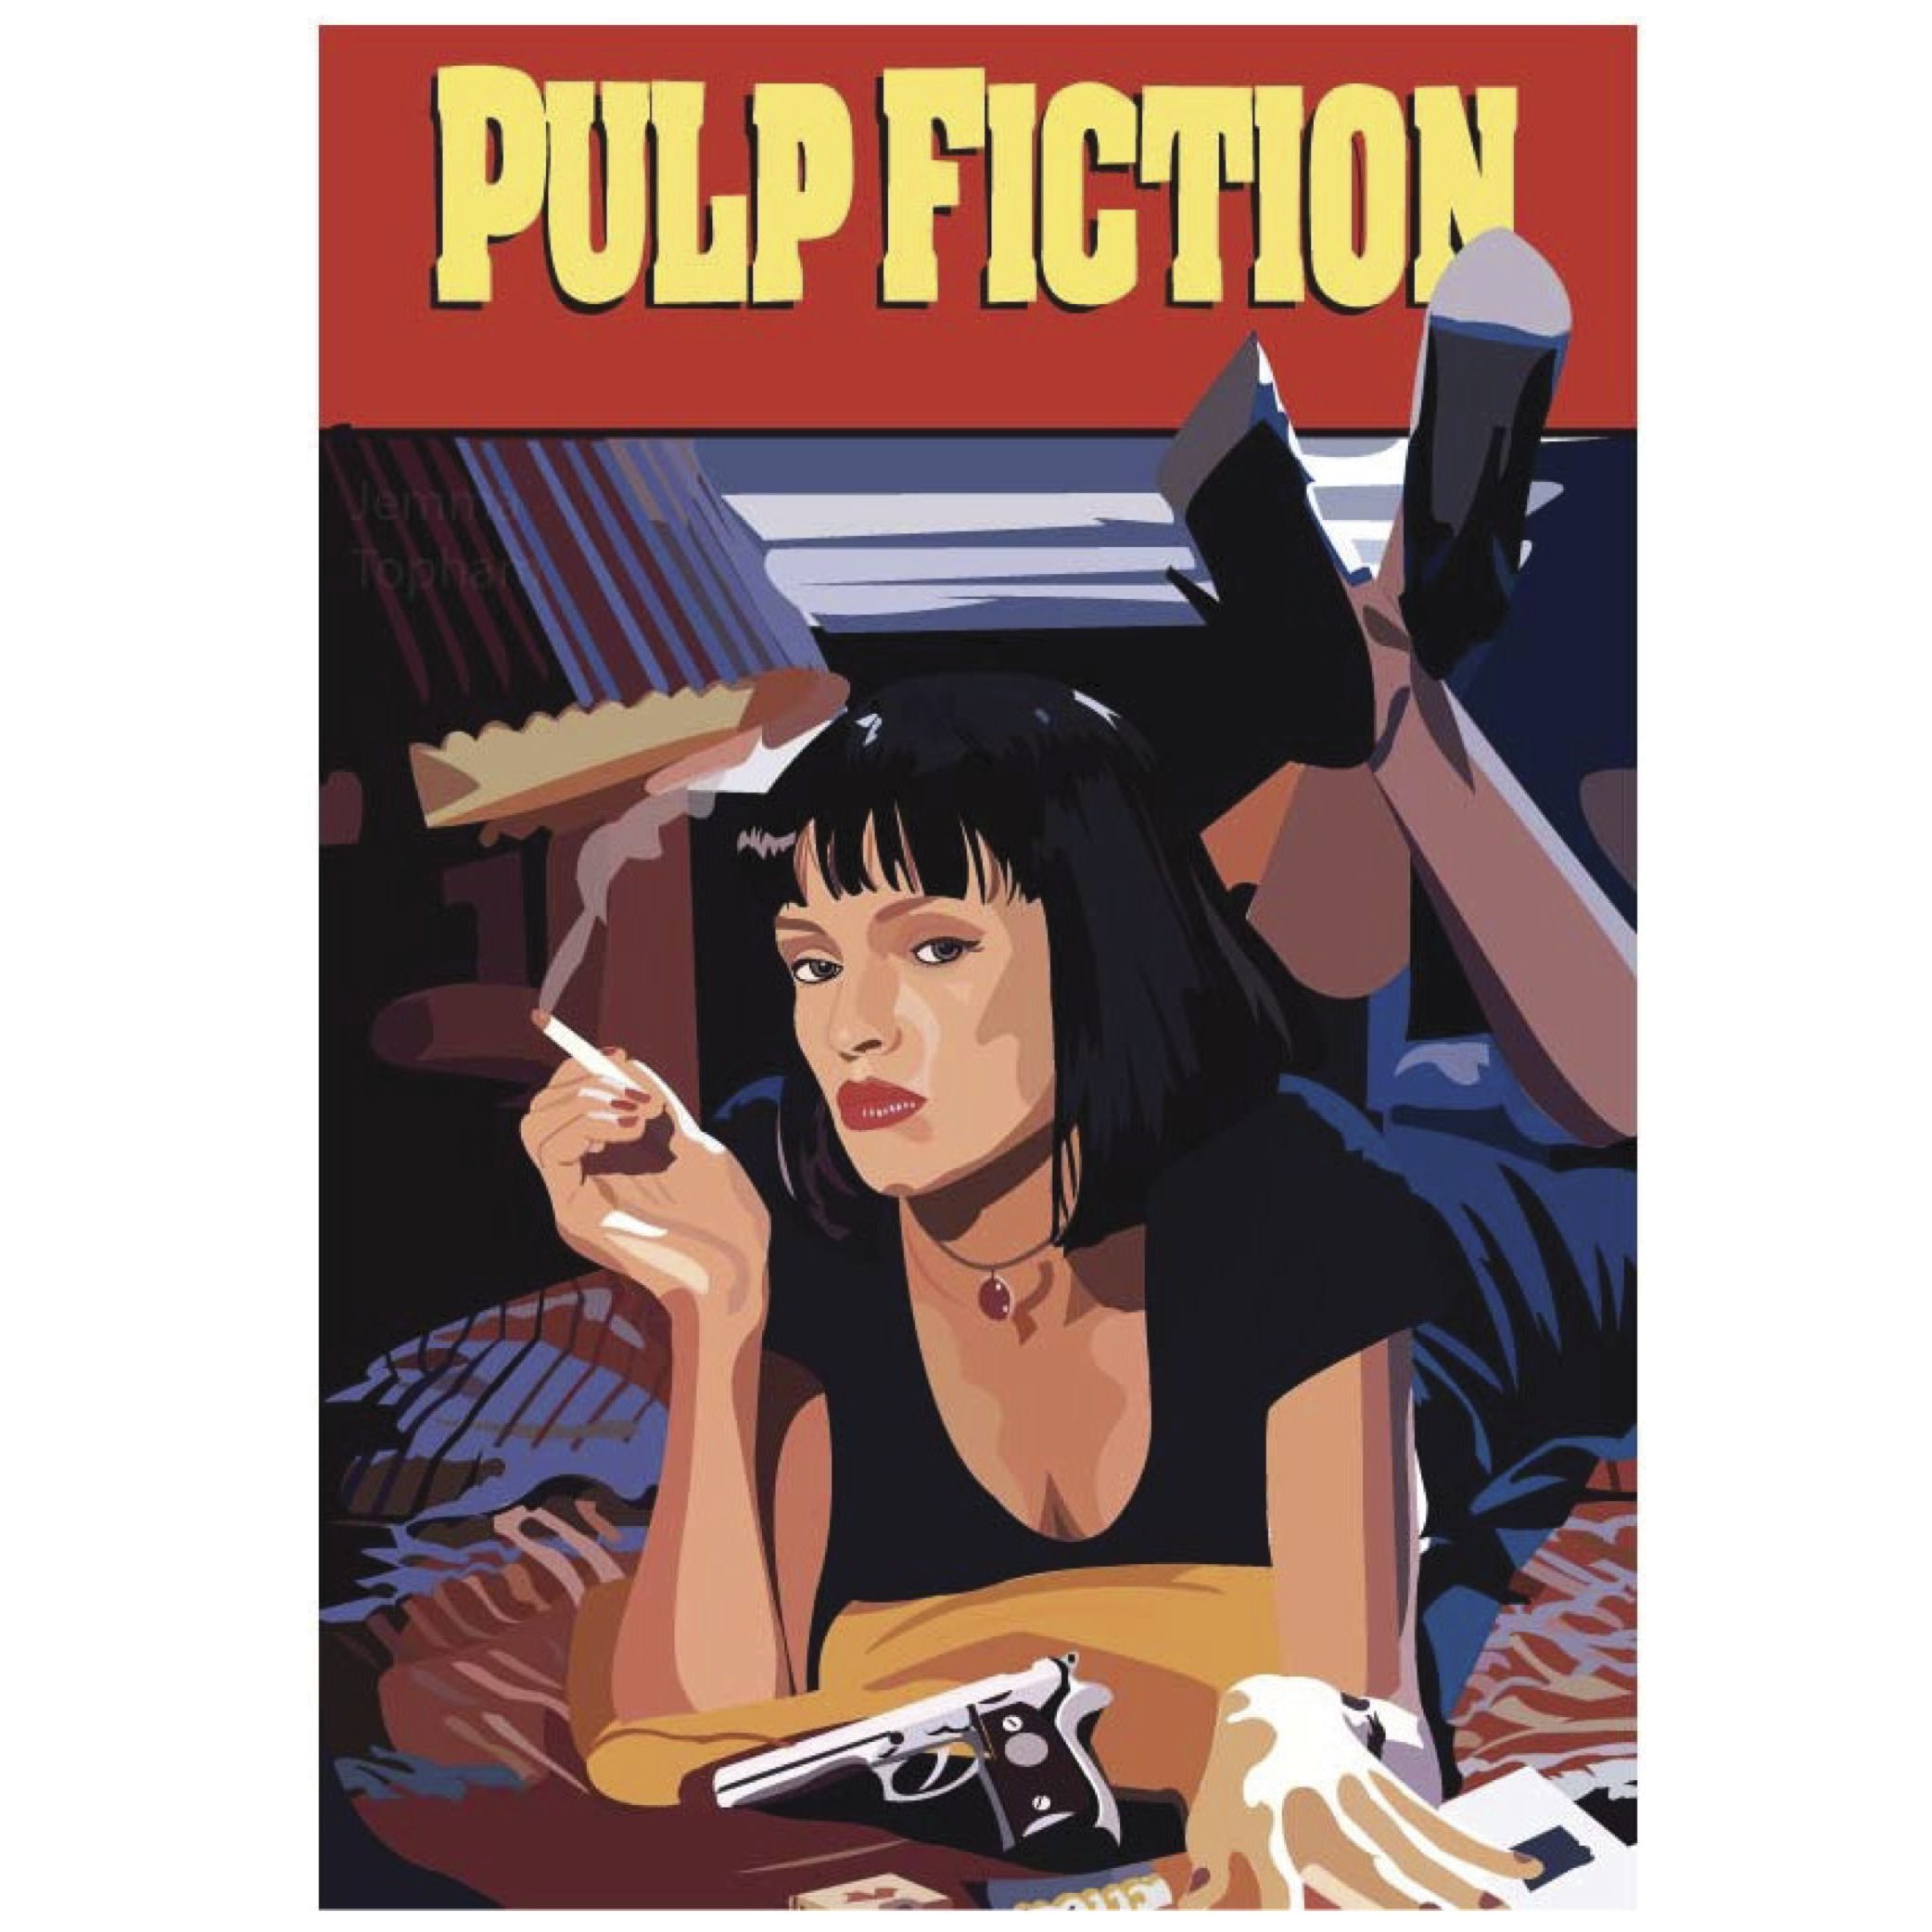 A Pulp Fiction Vector Illustration I Have Created Purely For Enjoyment And The Love Of Design